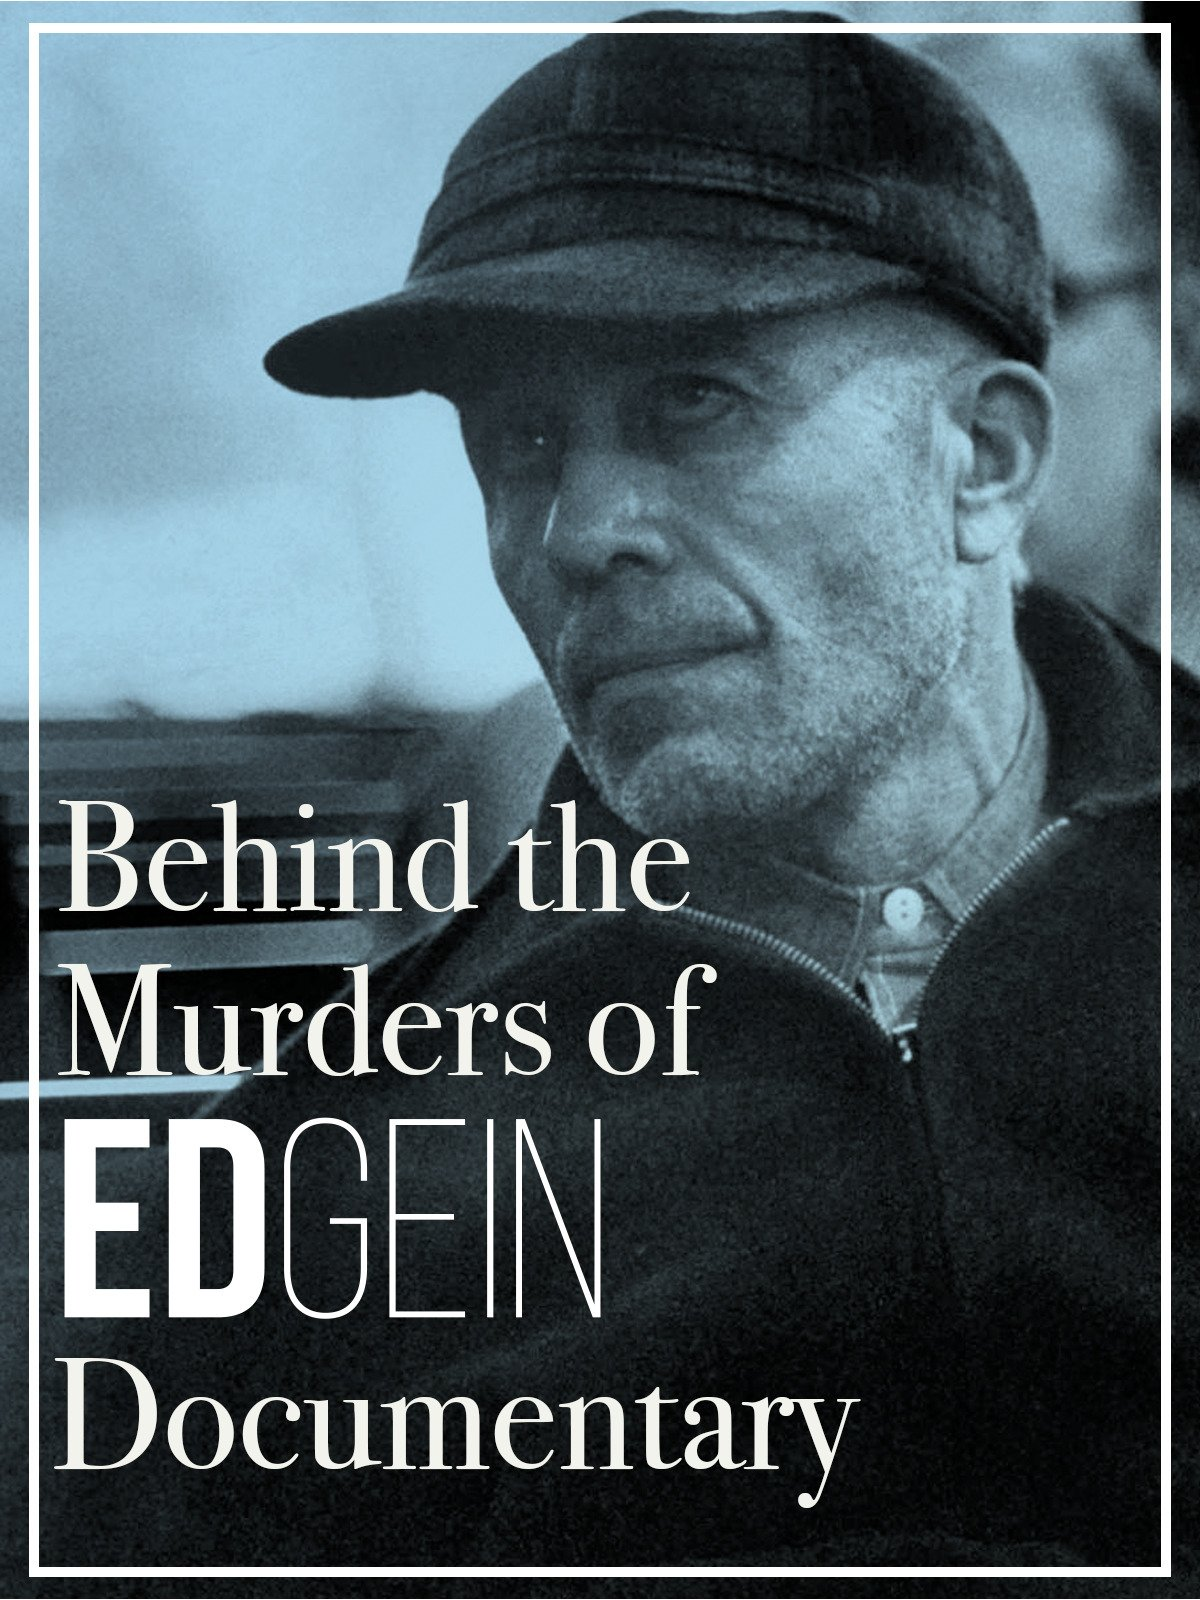 Behind the Murders of Ed Gein Documentary on Amazon Prime Video UK